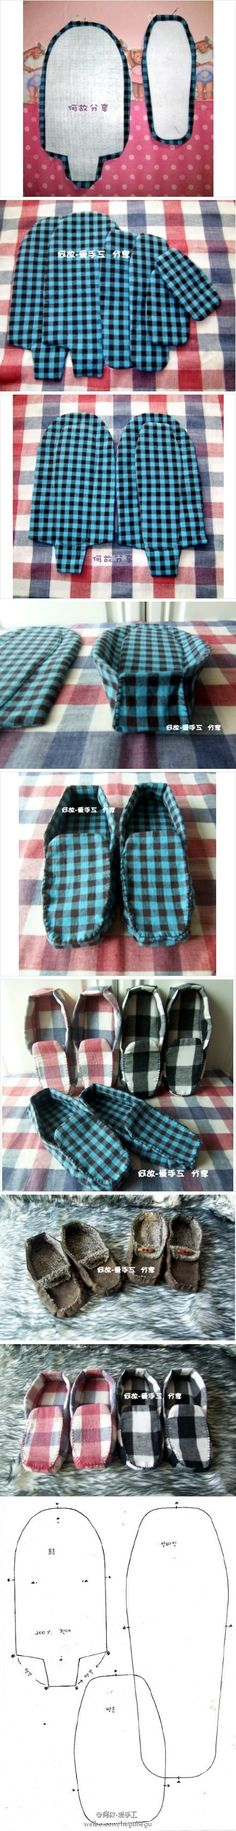 Image only tutorial to make your own house slippers from upcycled shirts, sweaters, and blankets!